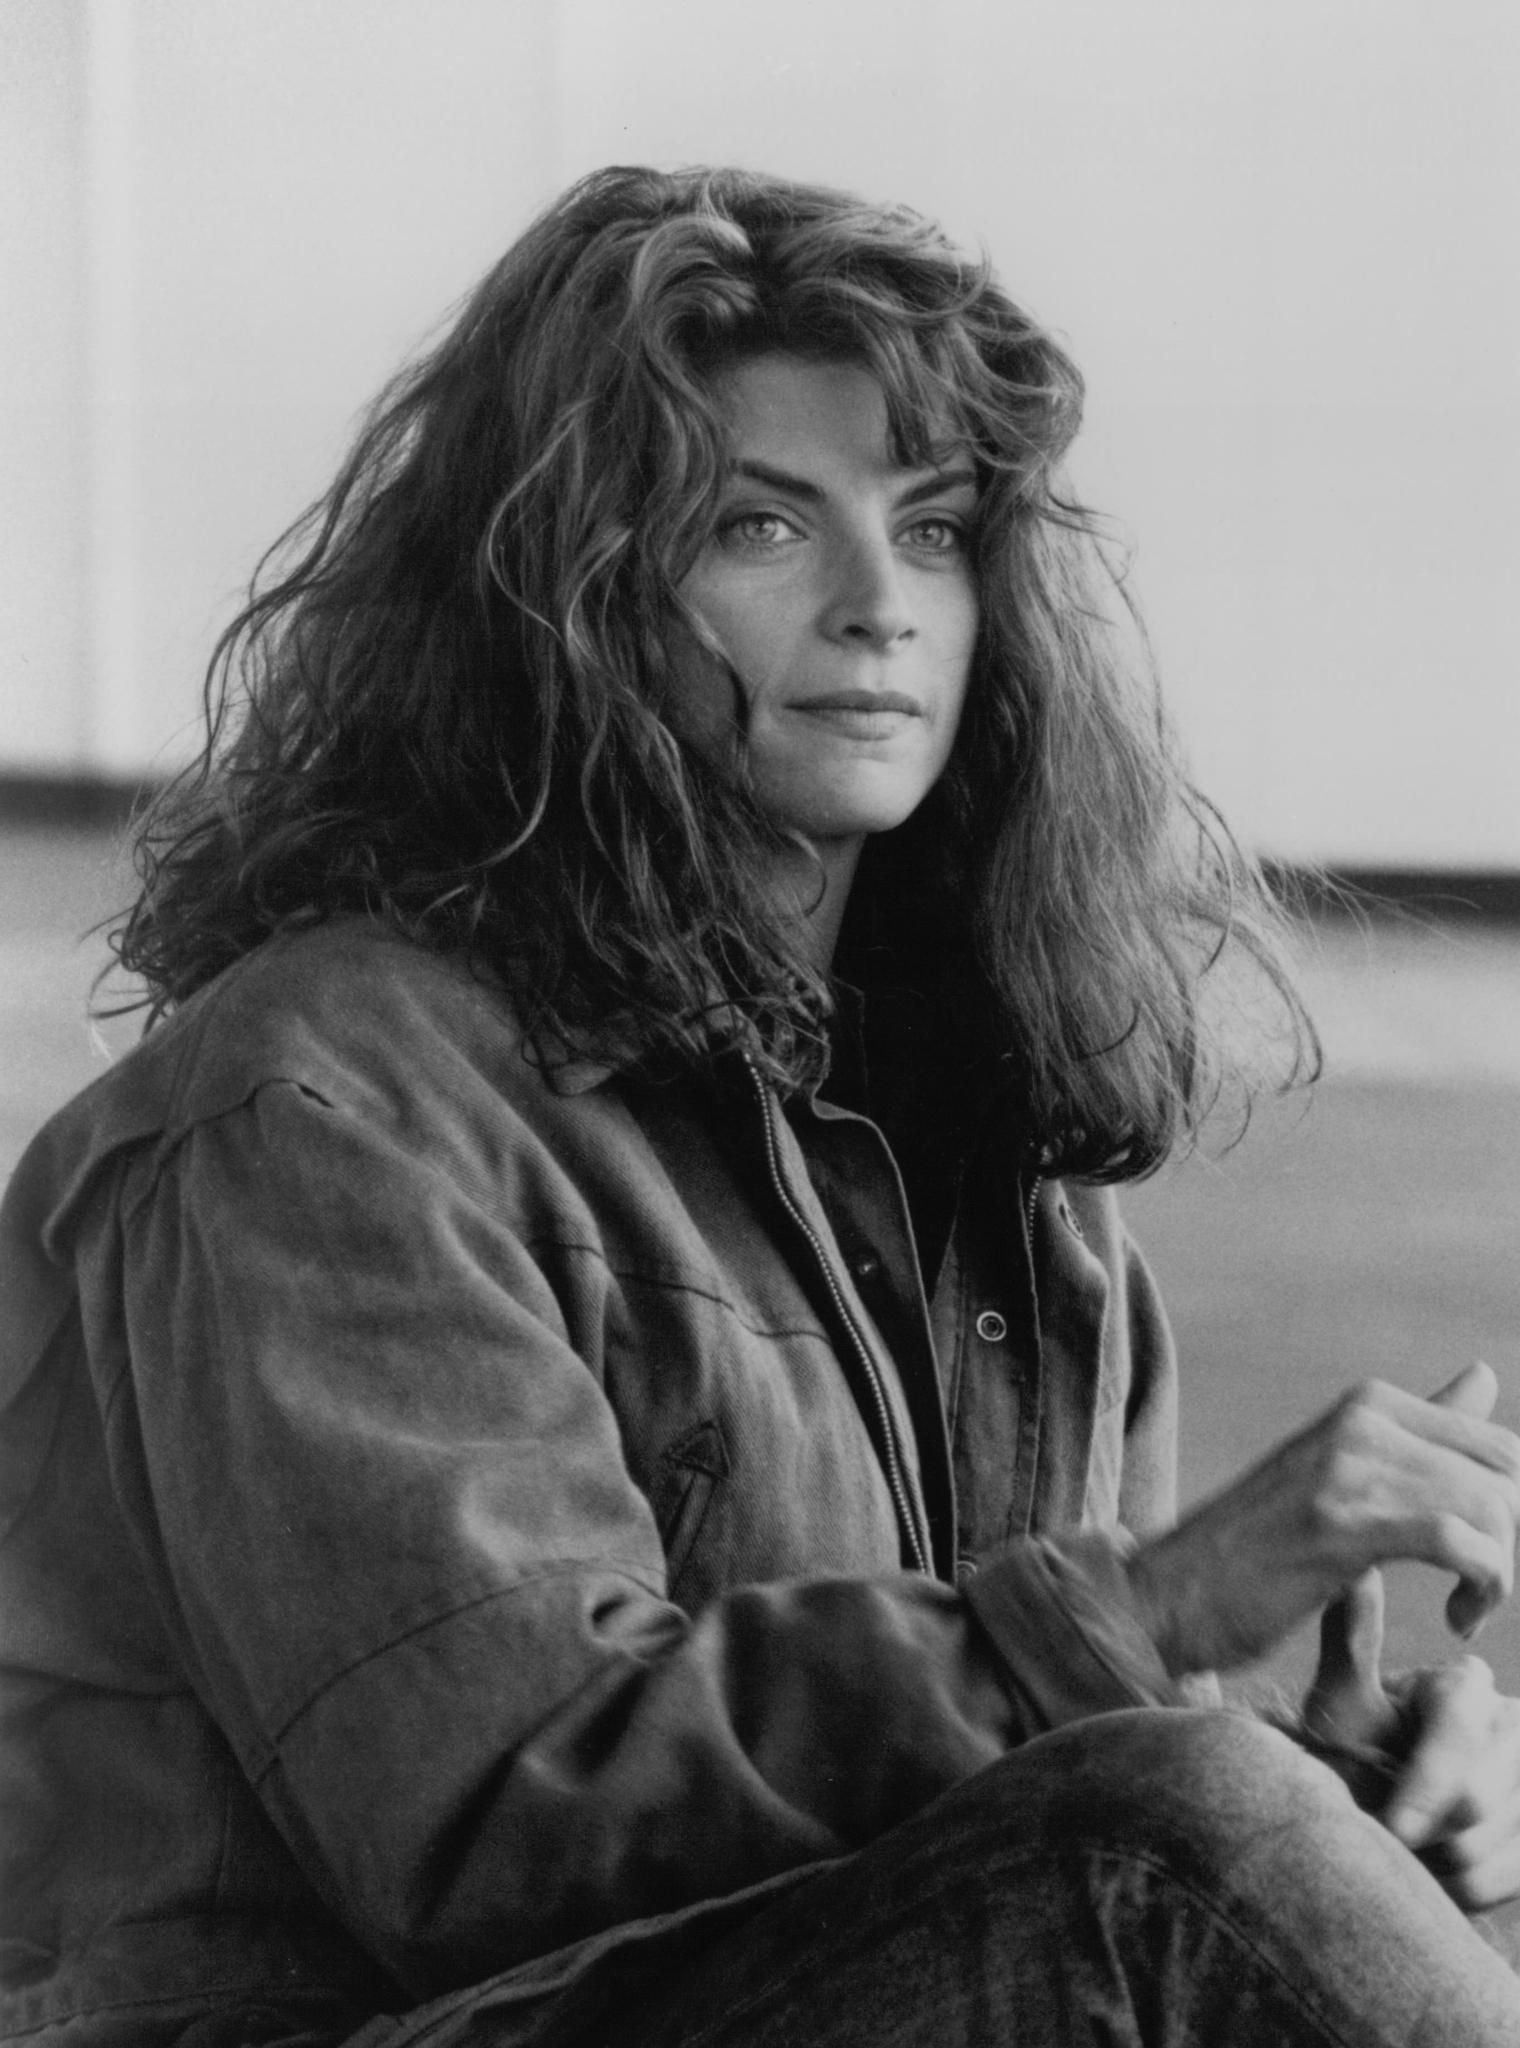 pictures Kirstie Alley born January 12, 1951 (age 67)